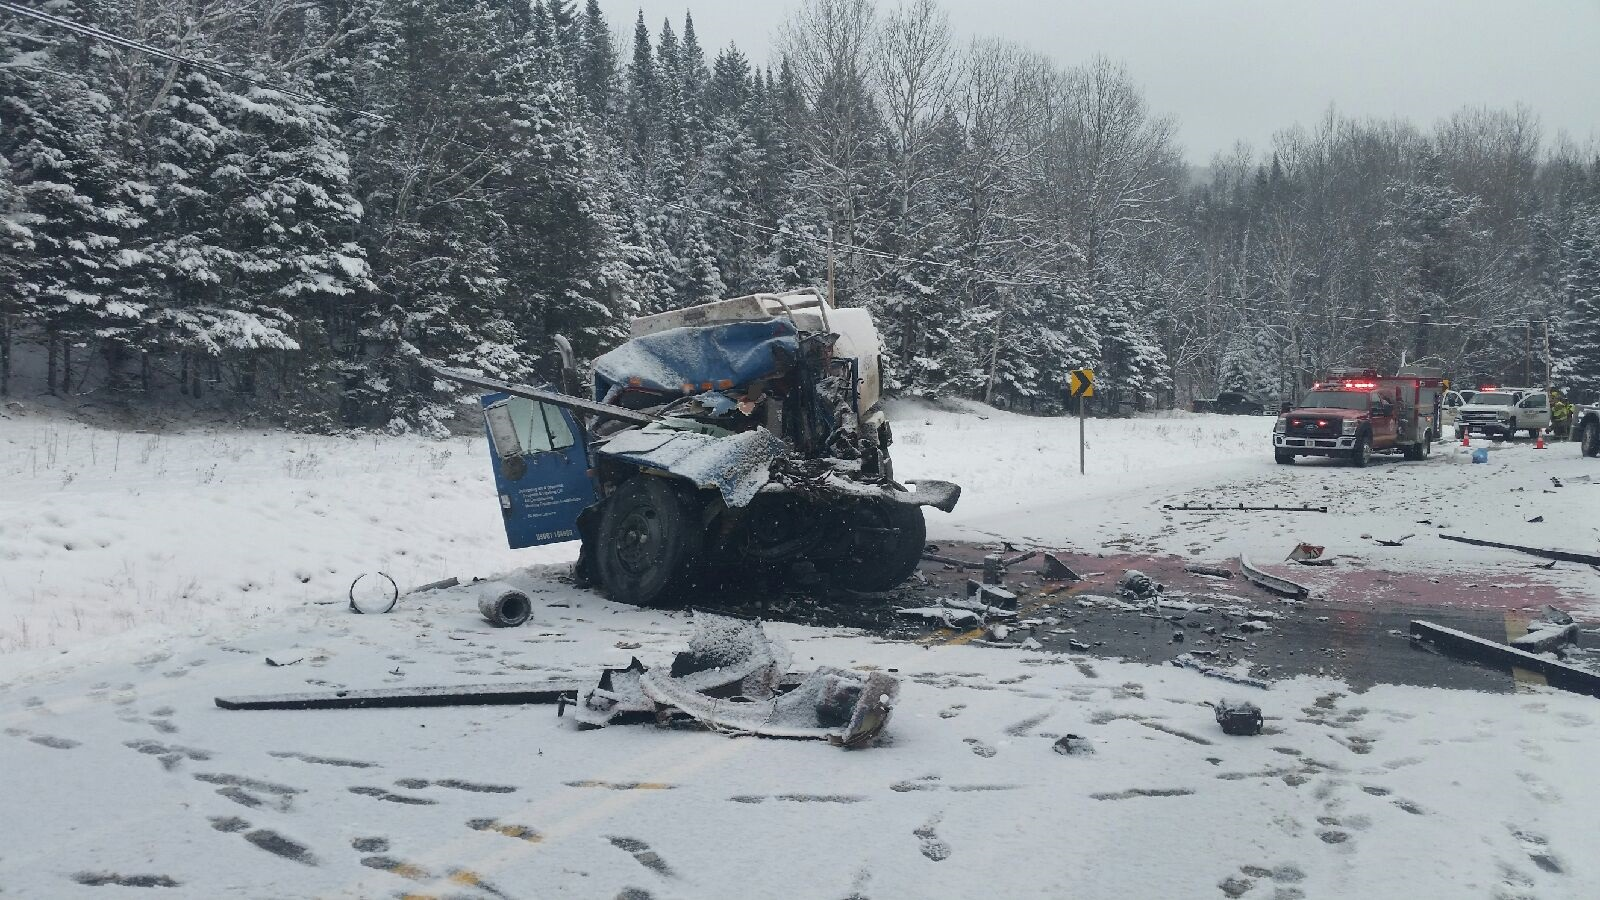 The crash happened around 9:30 a.m. Monday on Route 27 in Chain of Ponds Township, approximately 10 minutes south of the Canadian border. (Franklin County Sheriff Office)